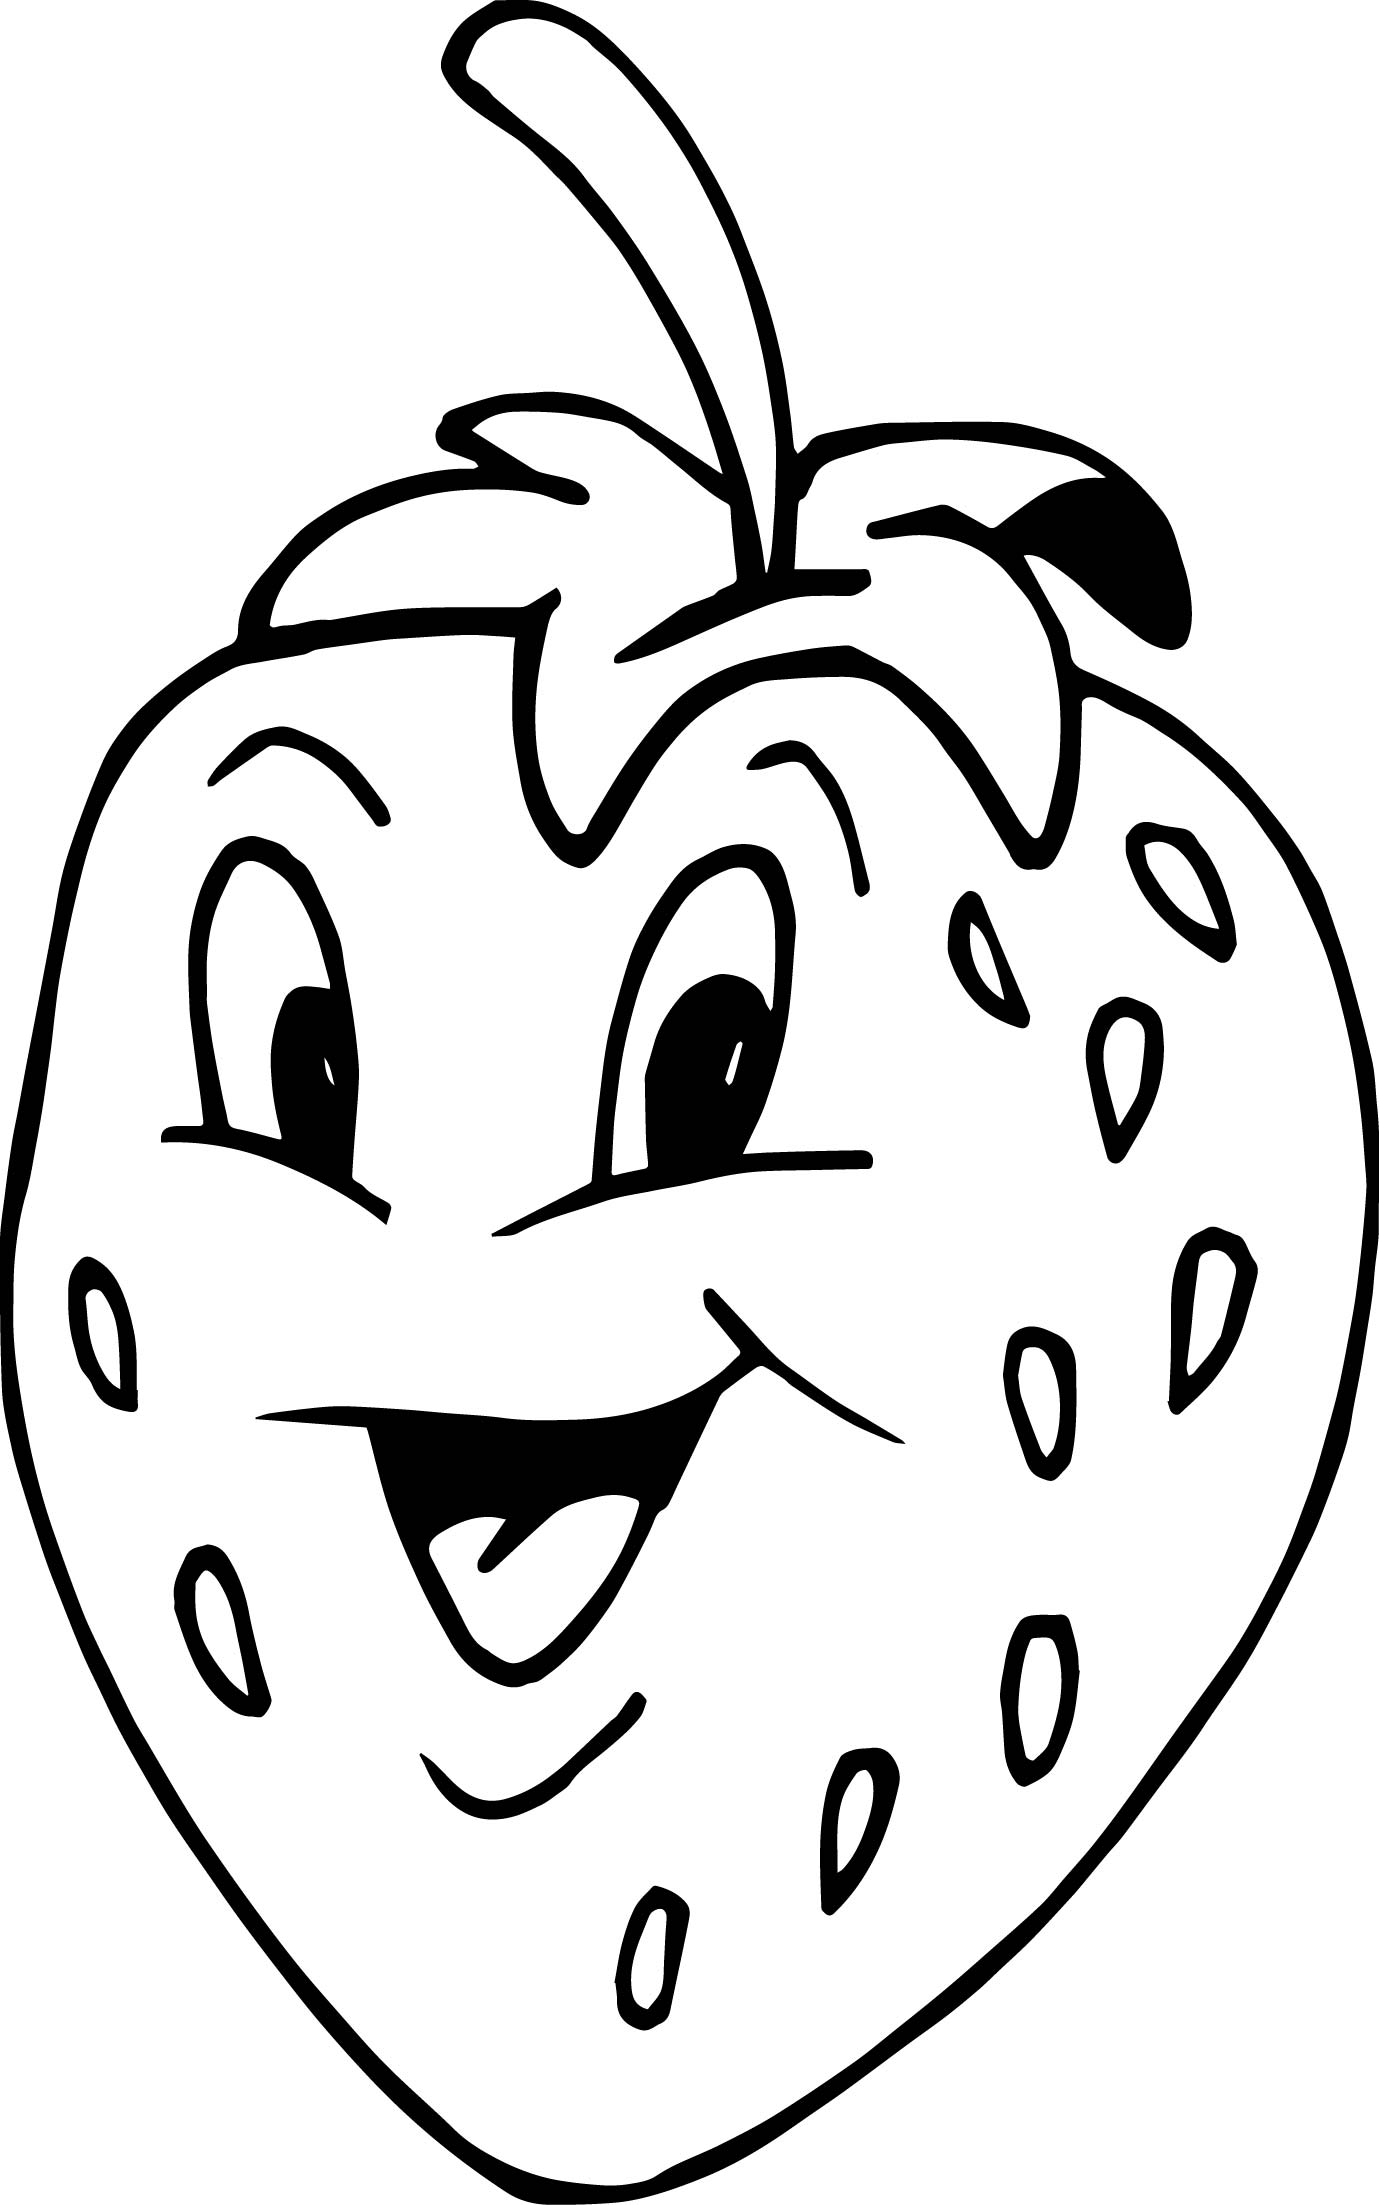 Smiling coloring pages ~ Strawberry Cartoon Smiling Coloring Page | Wecoloringpage.com